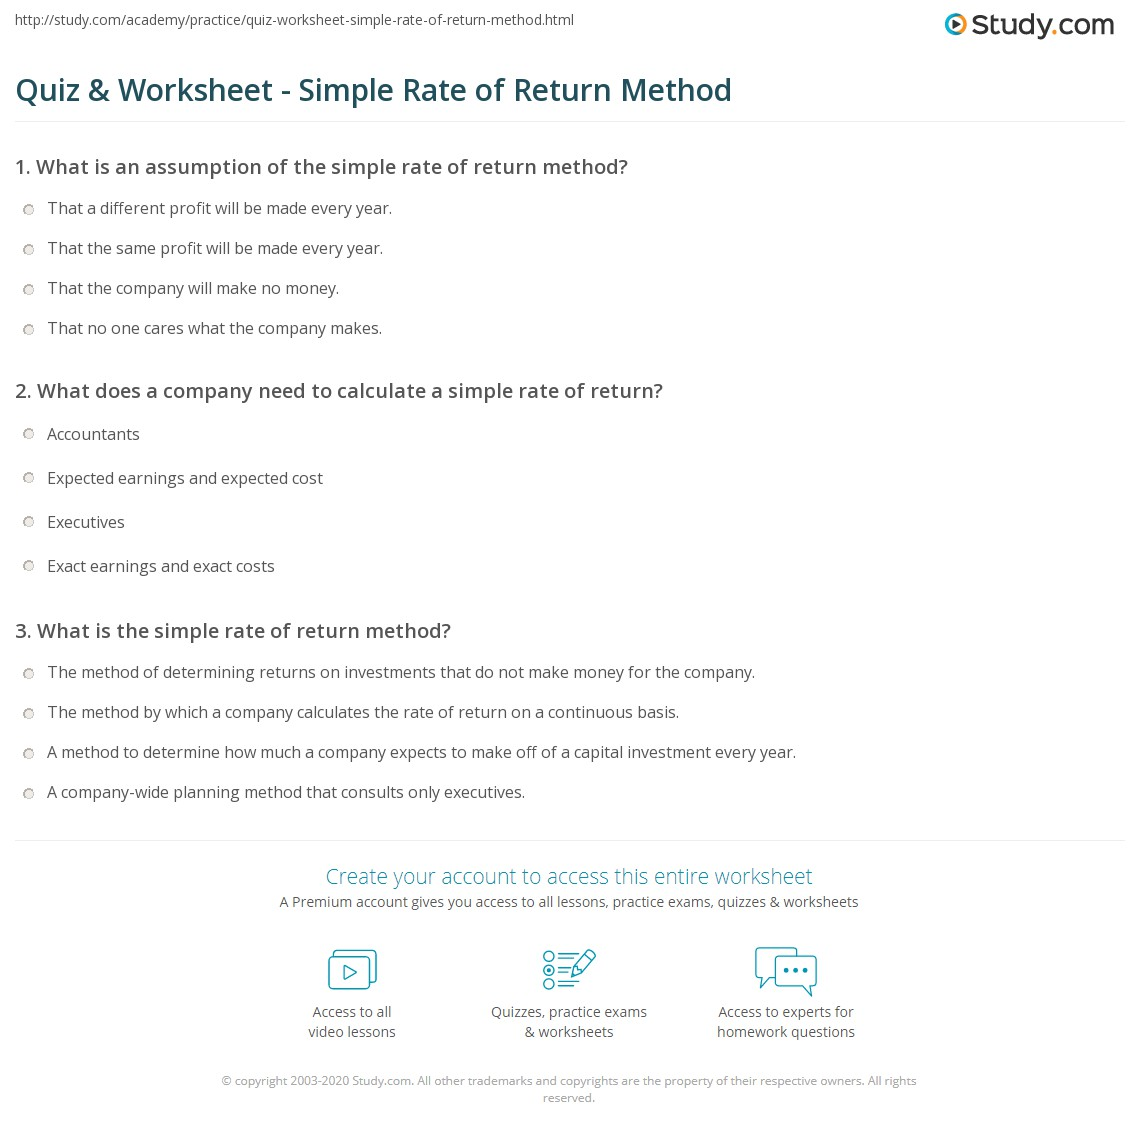 Quiz & Worksheet - Simple Rate of Return Method | Study.com